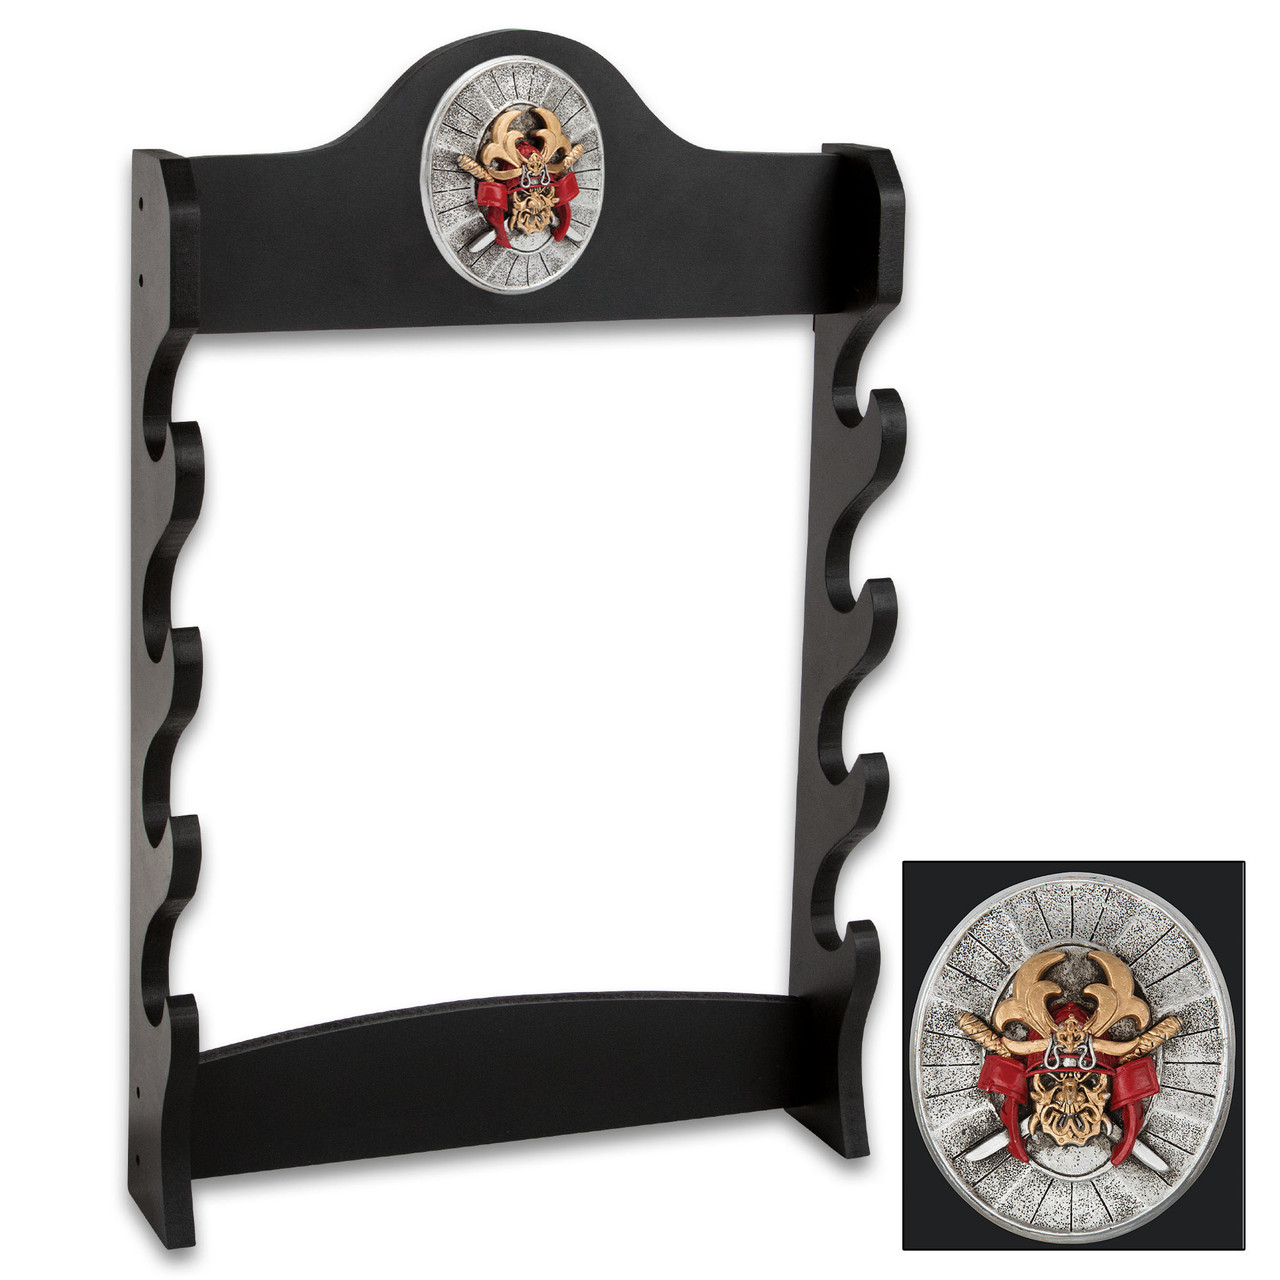 Sword Stand With Medallion - Displays 4 Swords